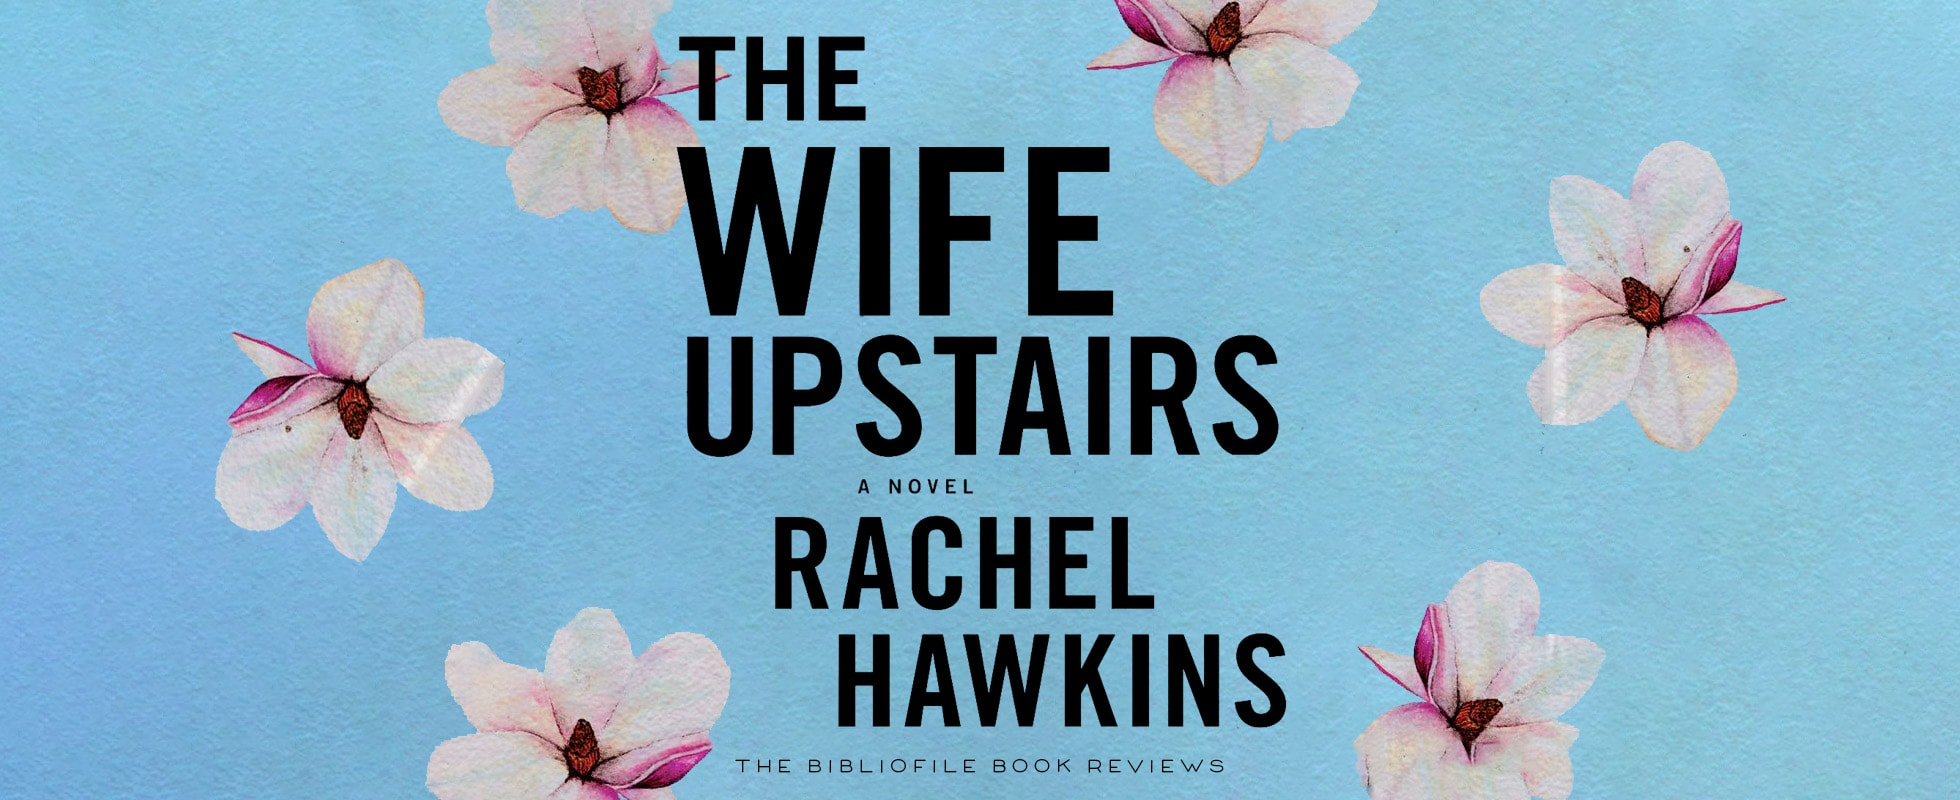 the wife upstairs by rachel hawkins summary book review synopsis recap